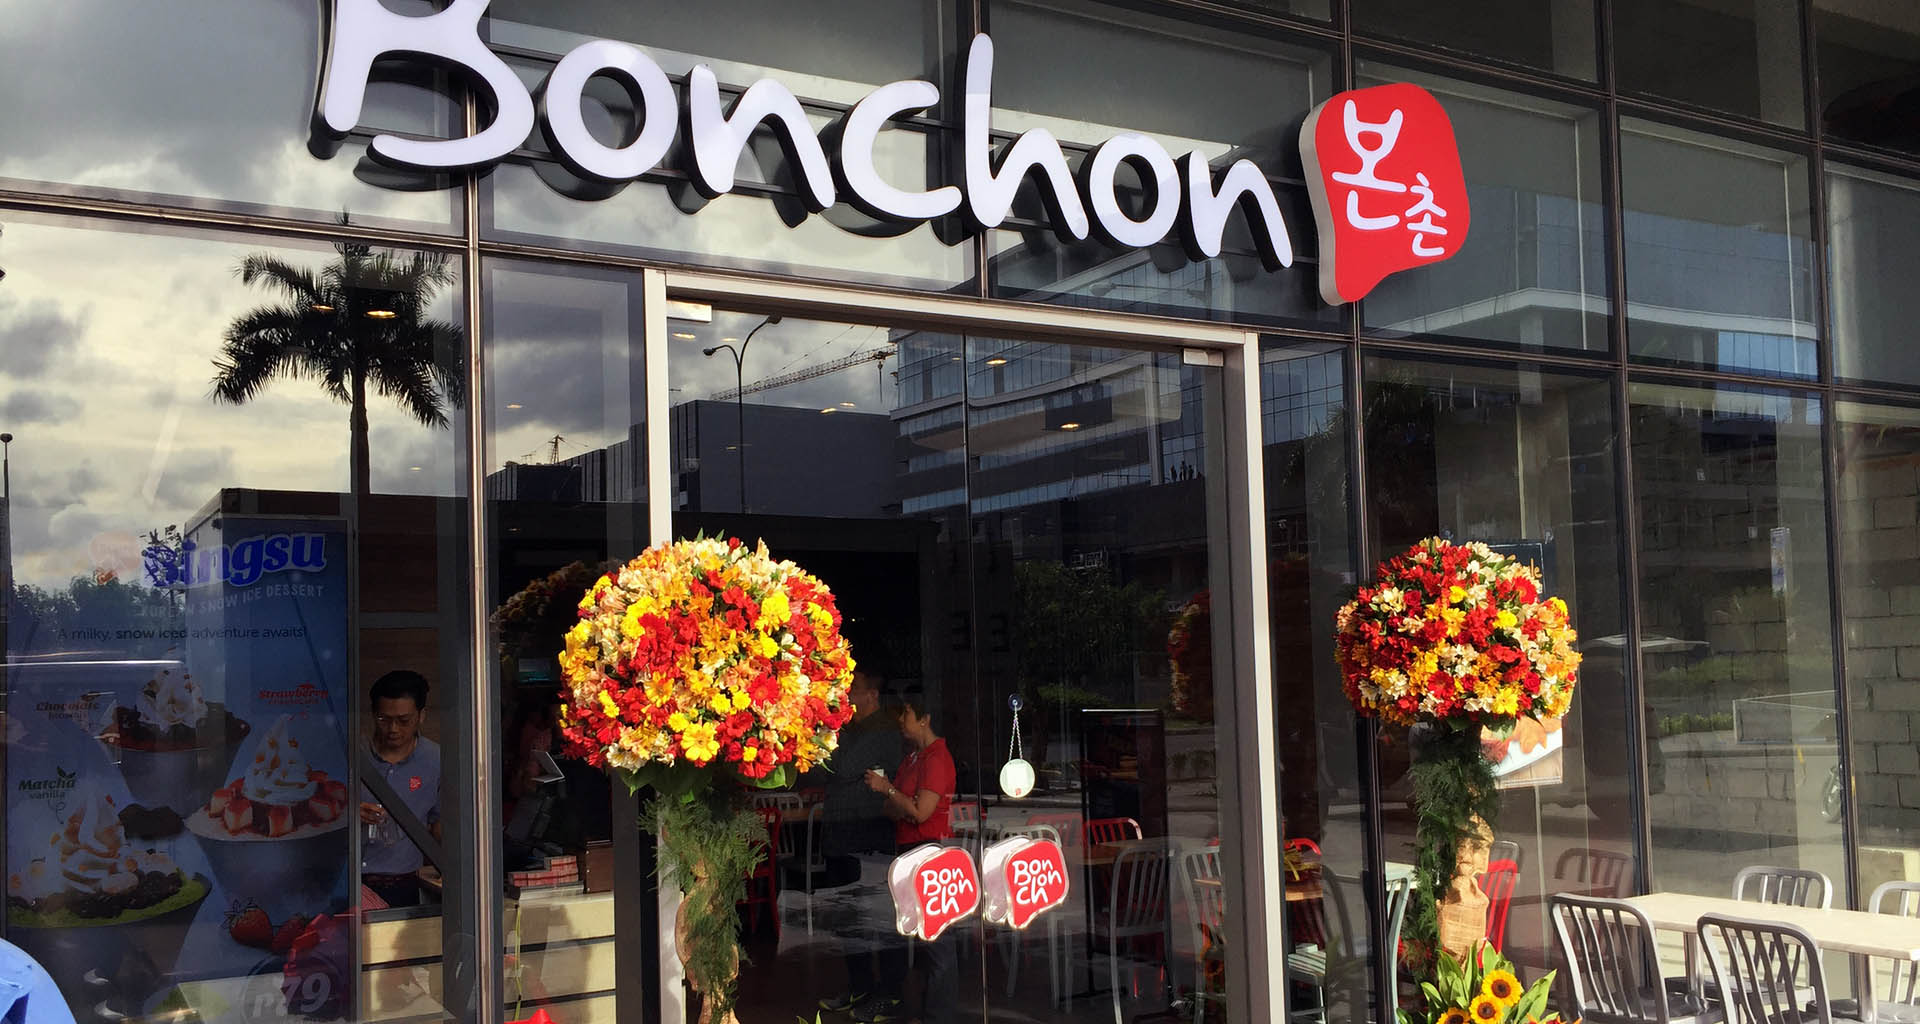 Flower Setup for Bonchon Opening